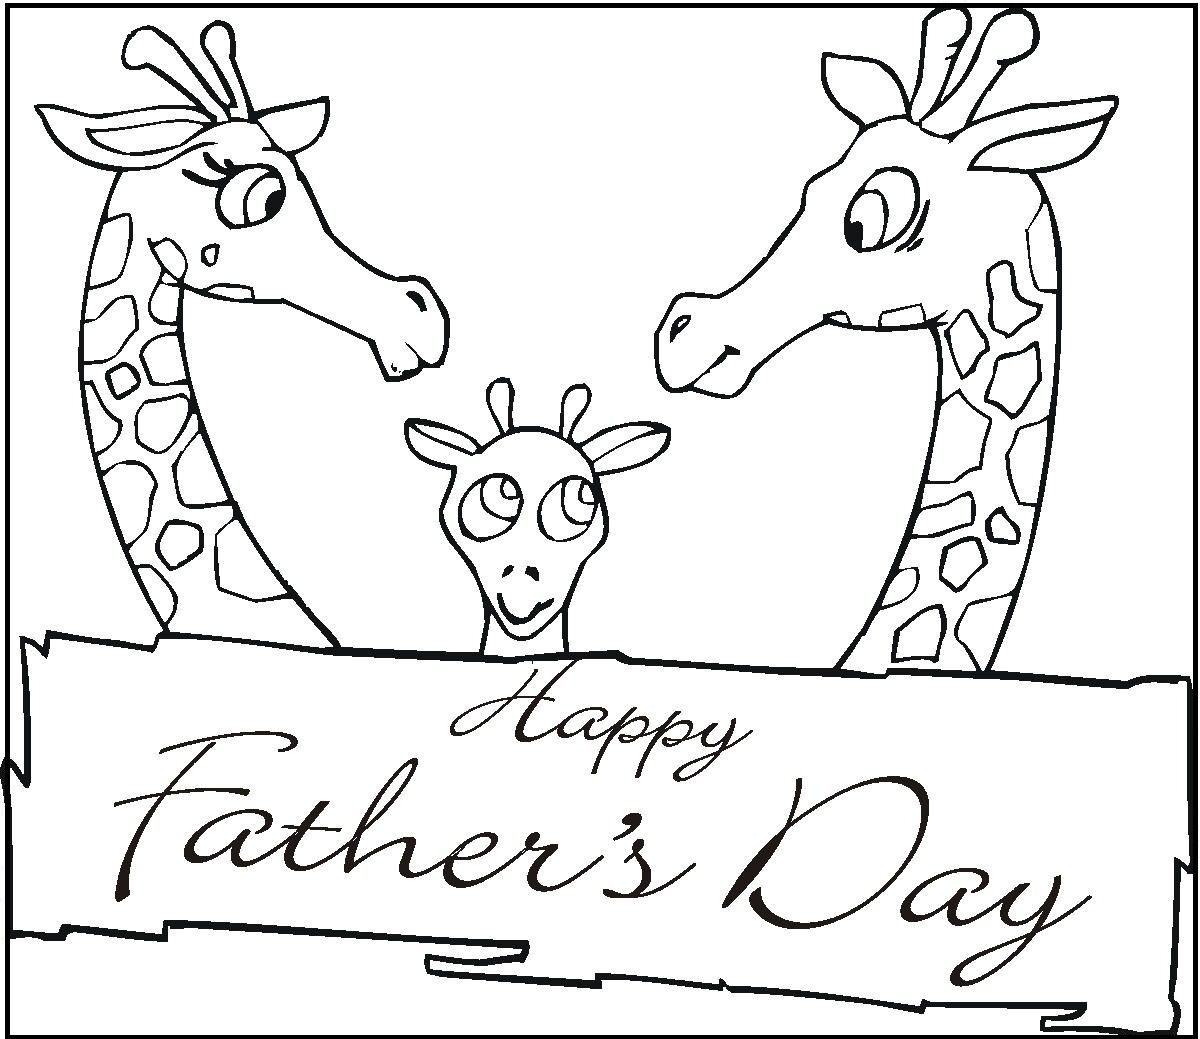 Fathers Day By Giraffe coloring picture for kids  Fathers Day